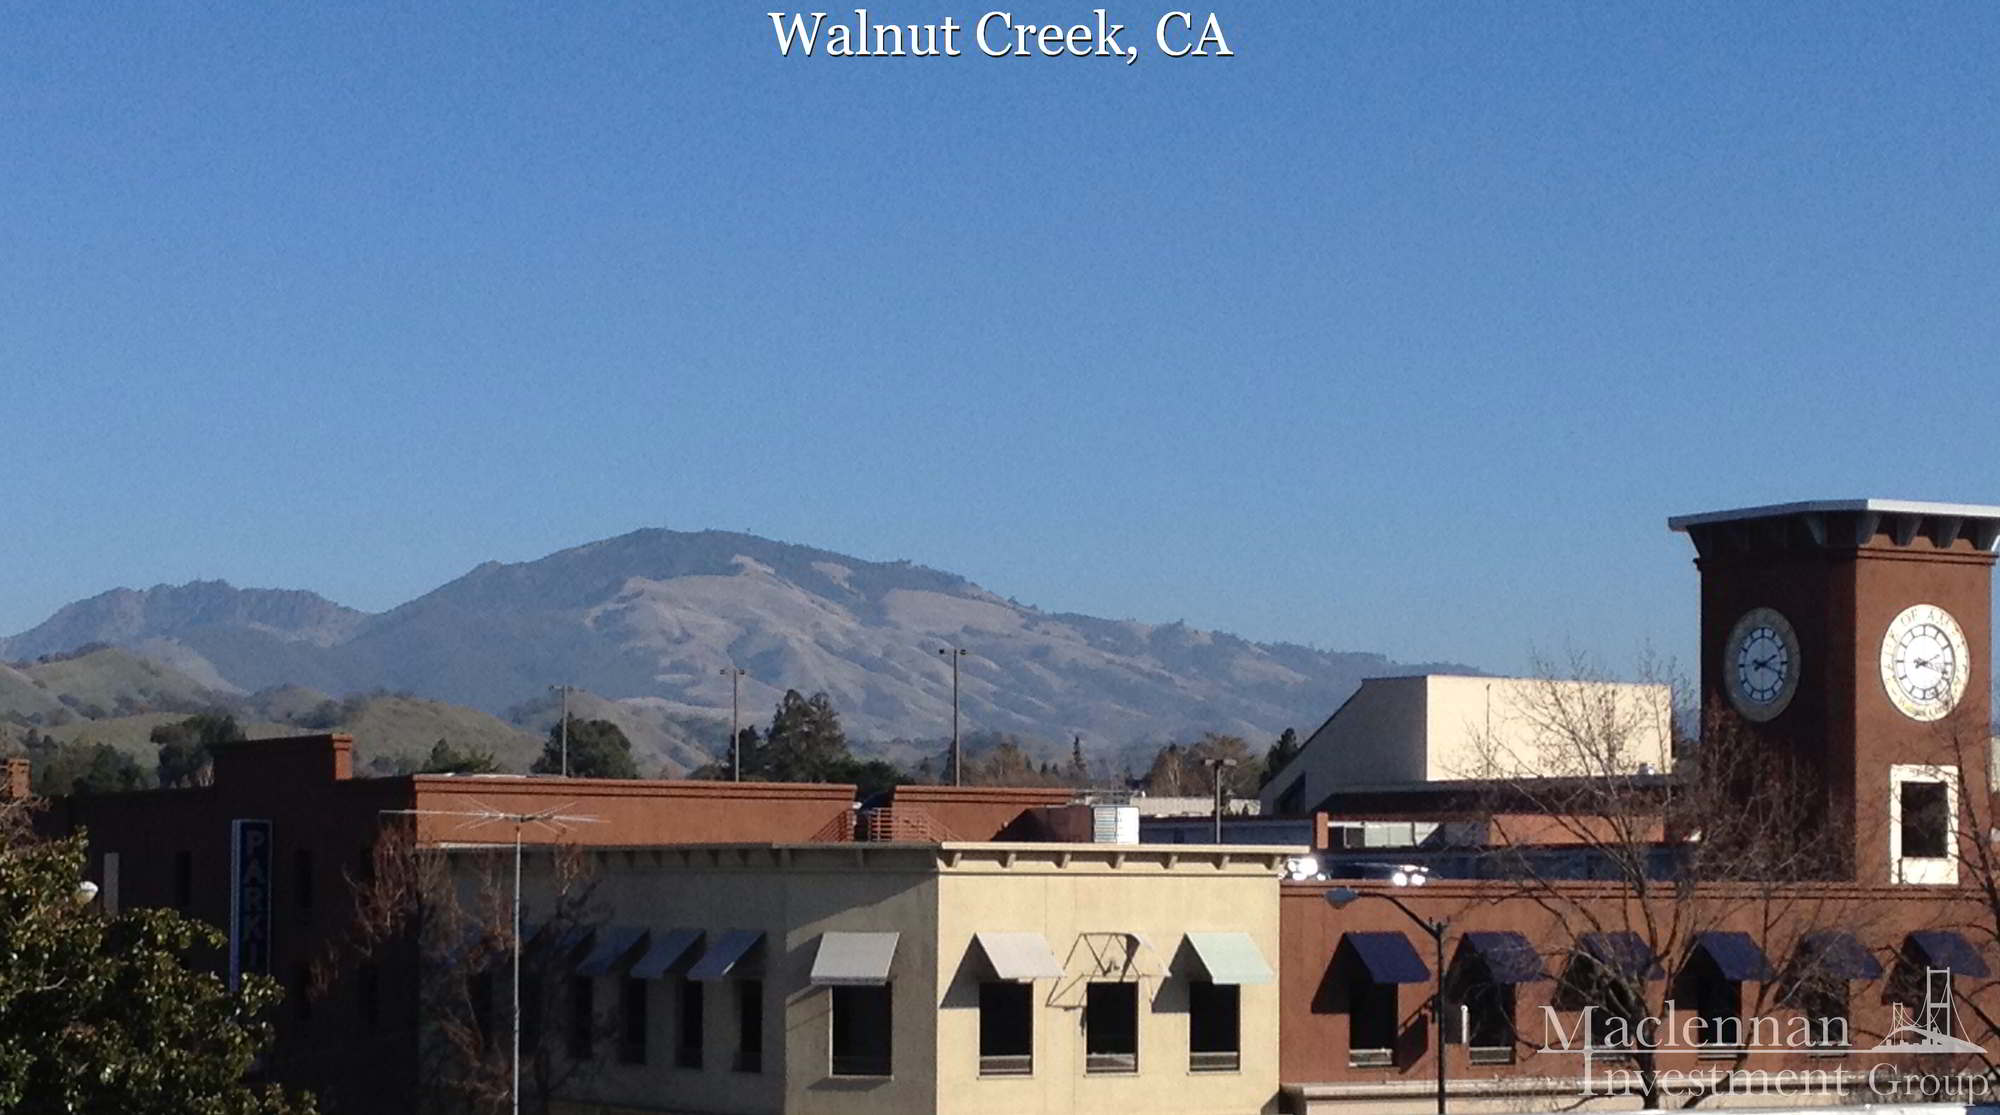 Walnut Creek, CA Downtown